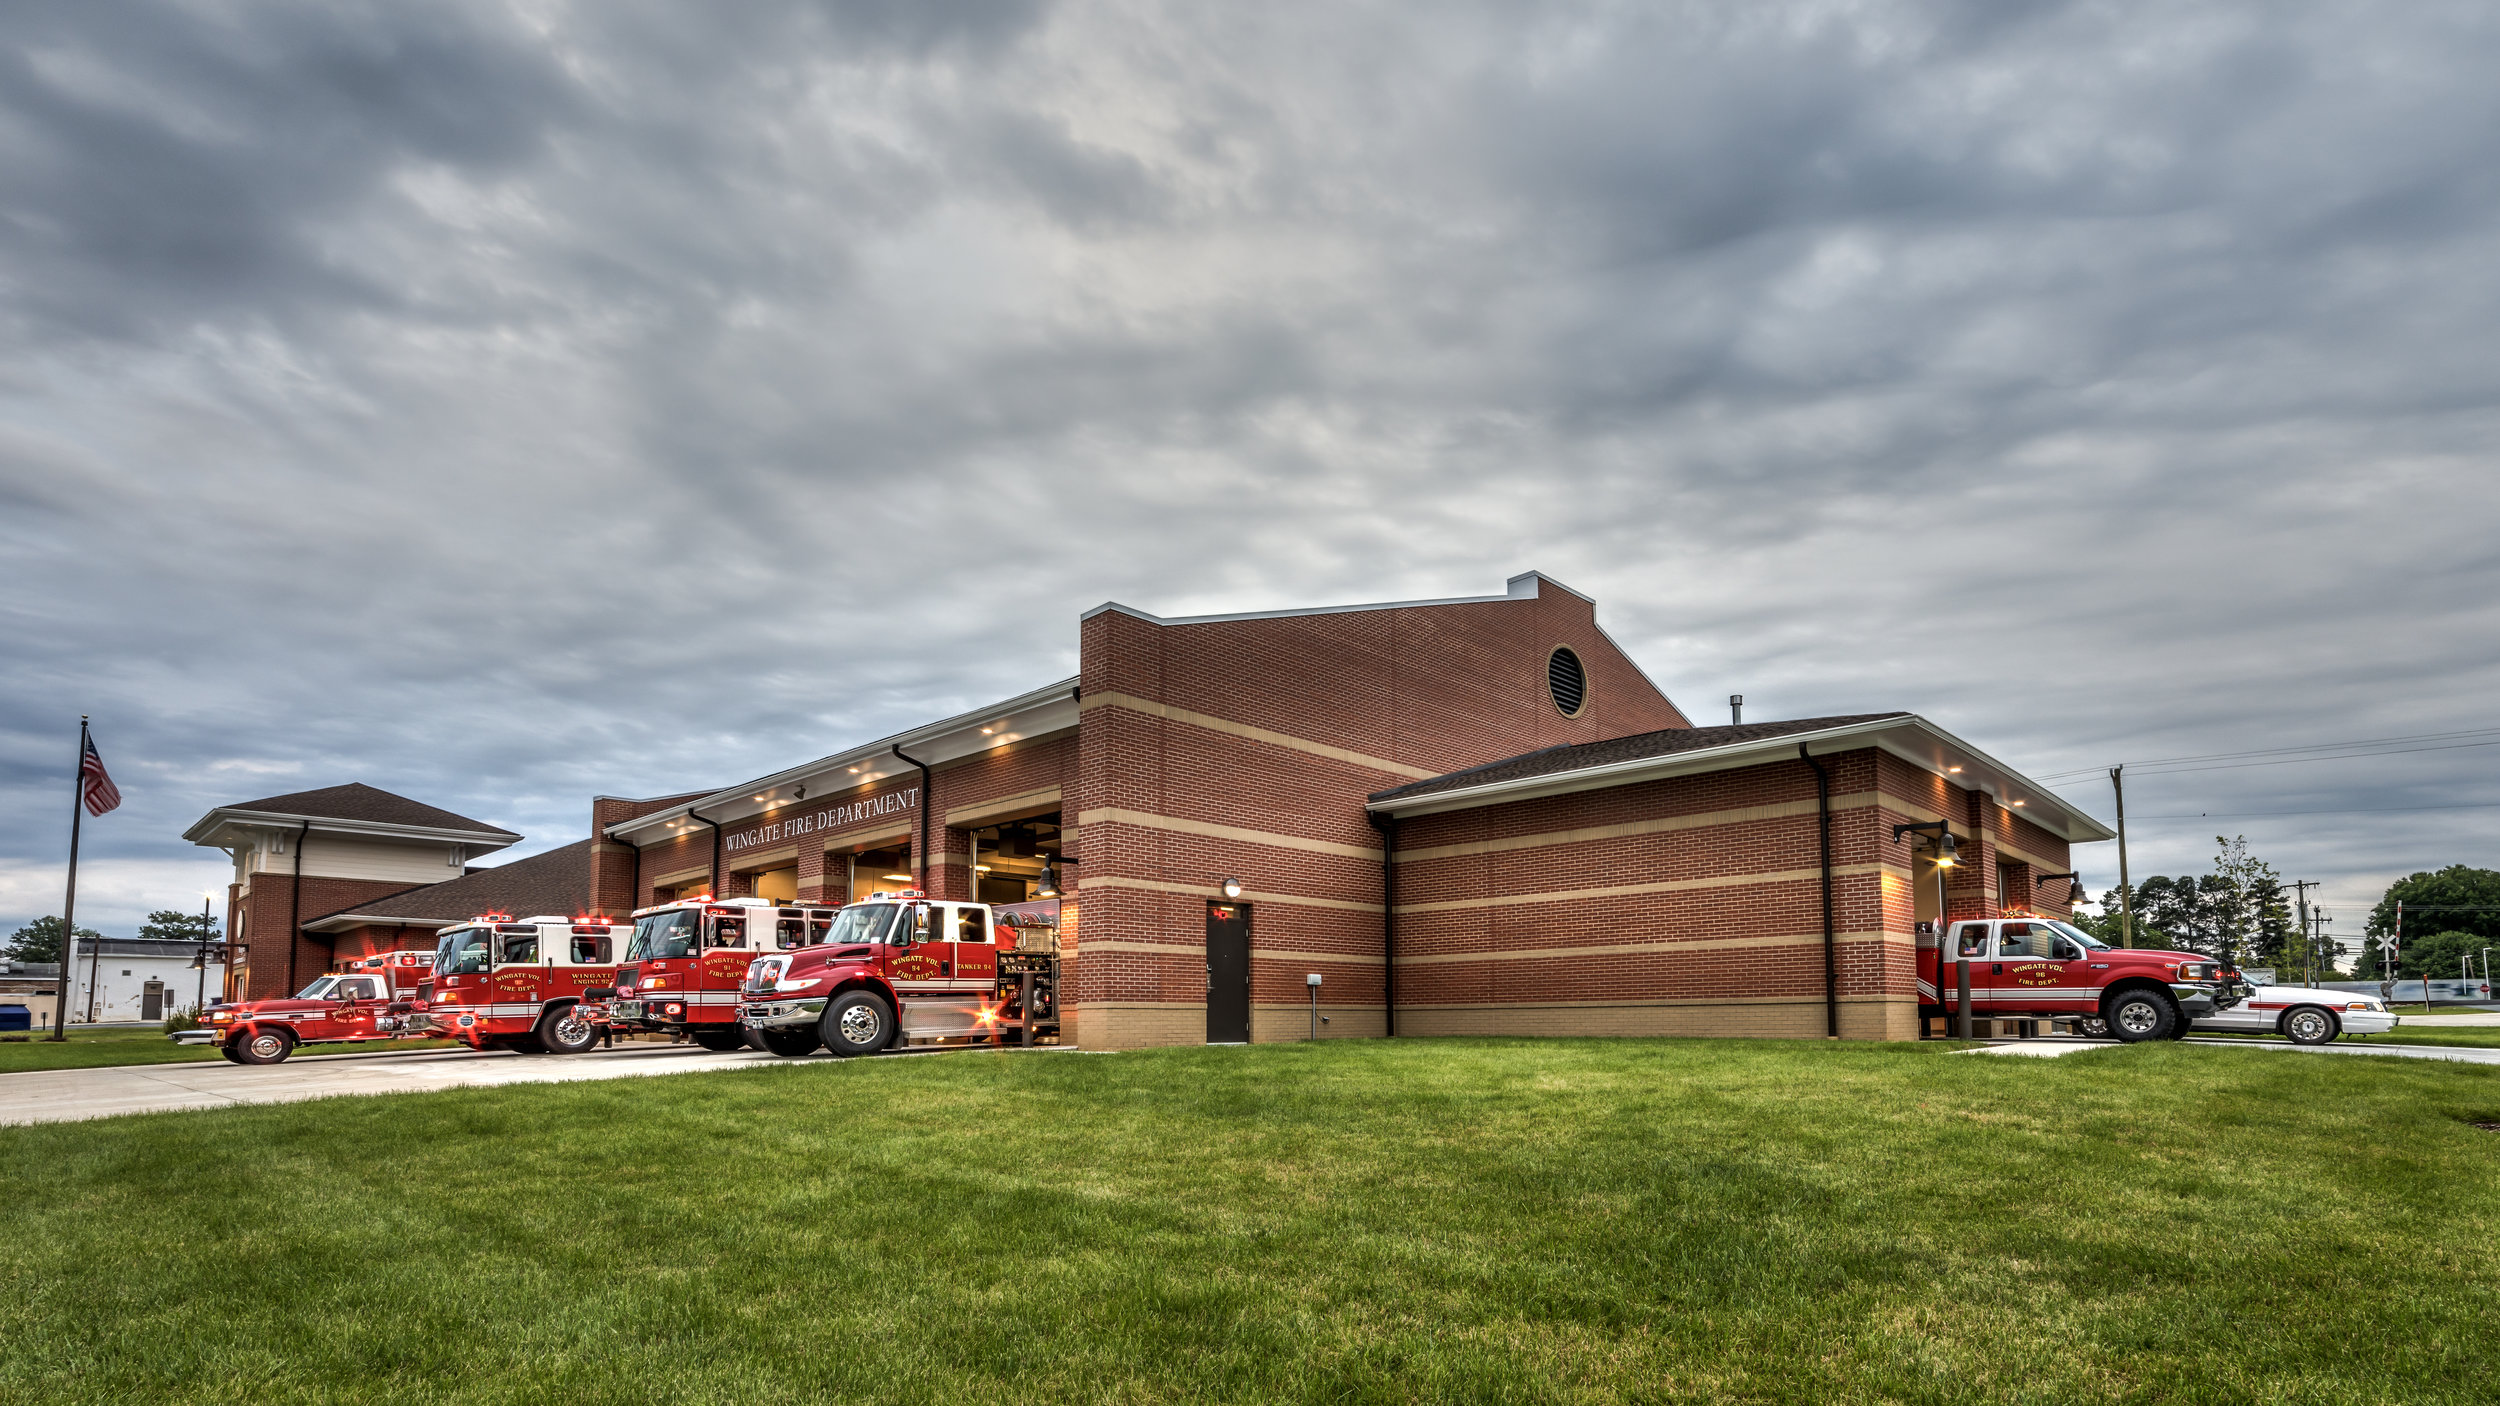 ADW-Civic-Public-Safety-Town-Hall-Fire-Station-Wingate-NC-Exterior-5.jpg